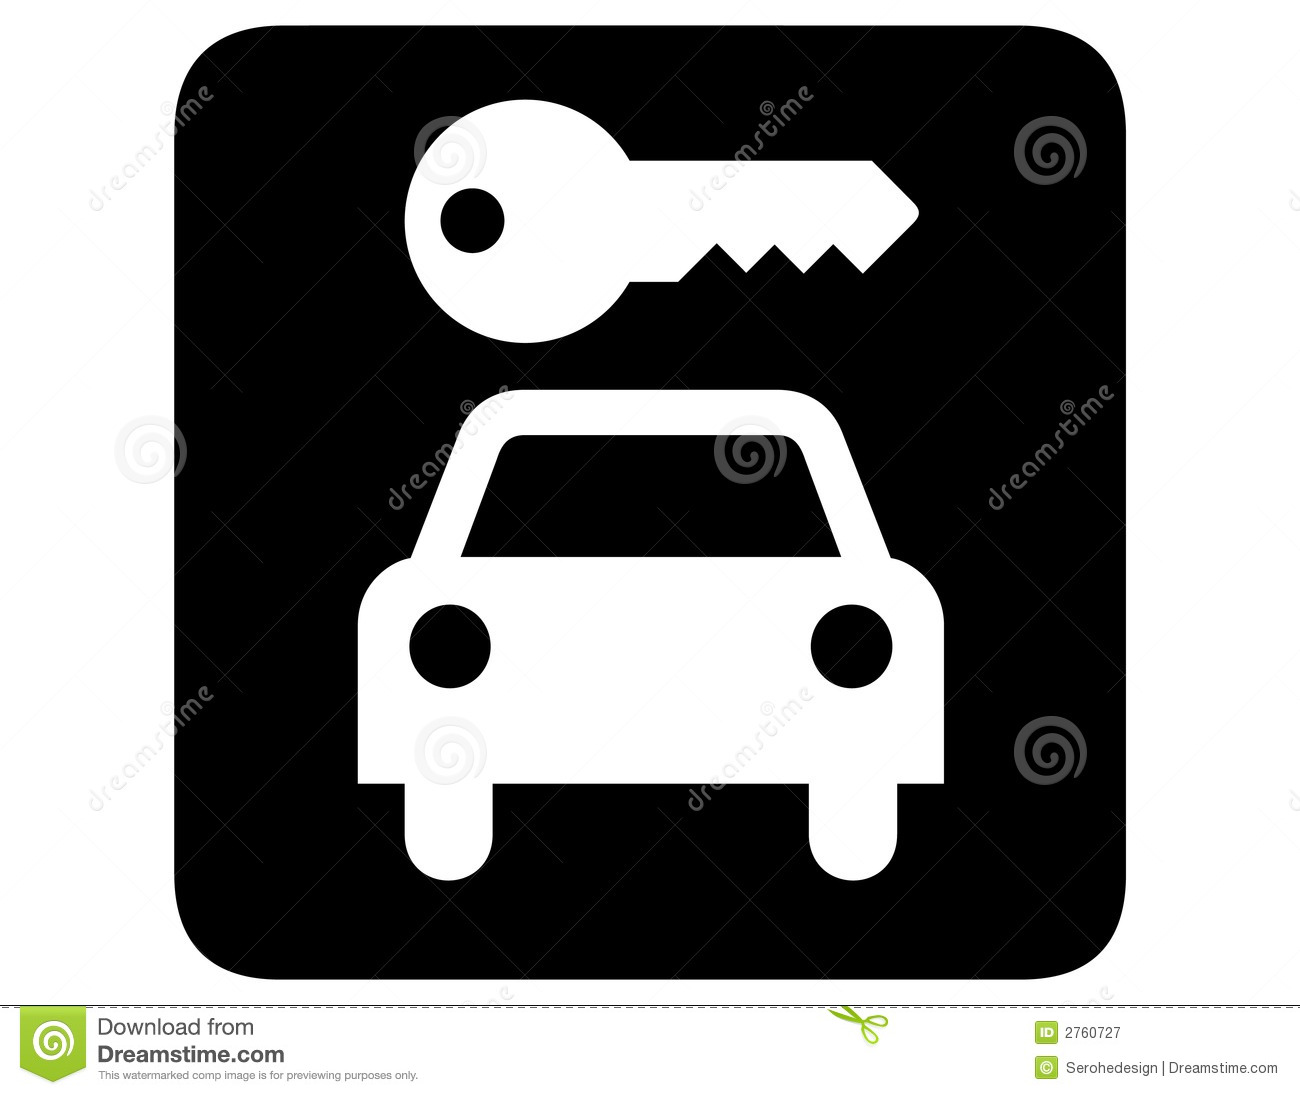 The World S Best Photos Of Car And Rent: Car Rental Inverted Royalty Free Stock Photography